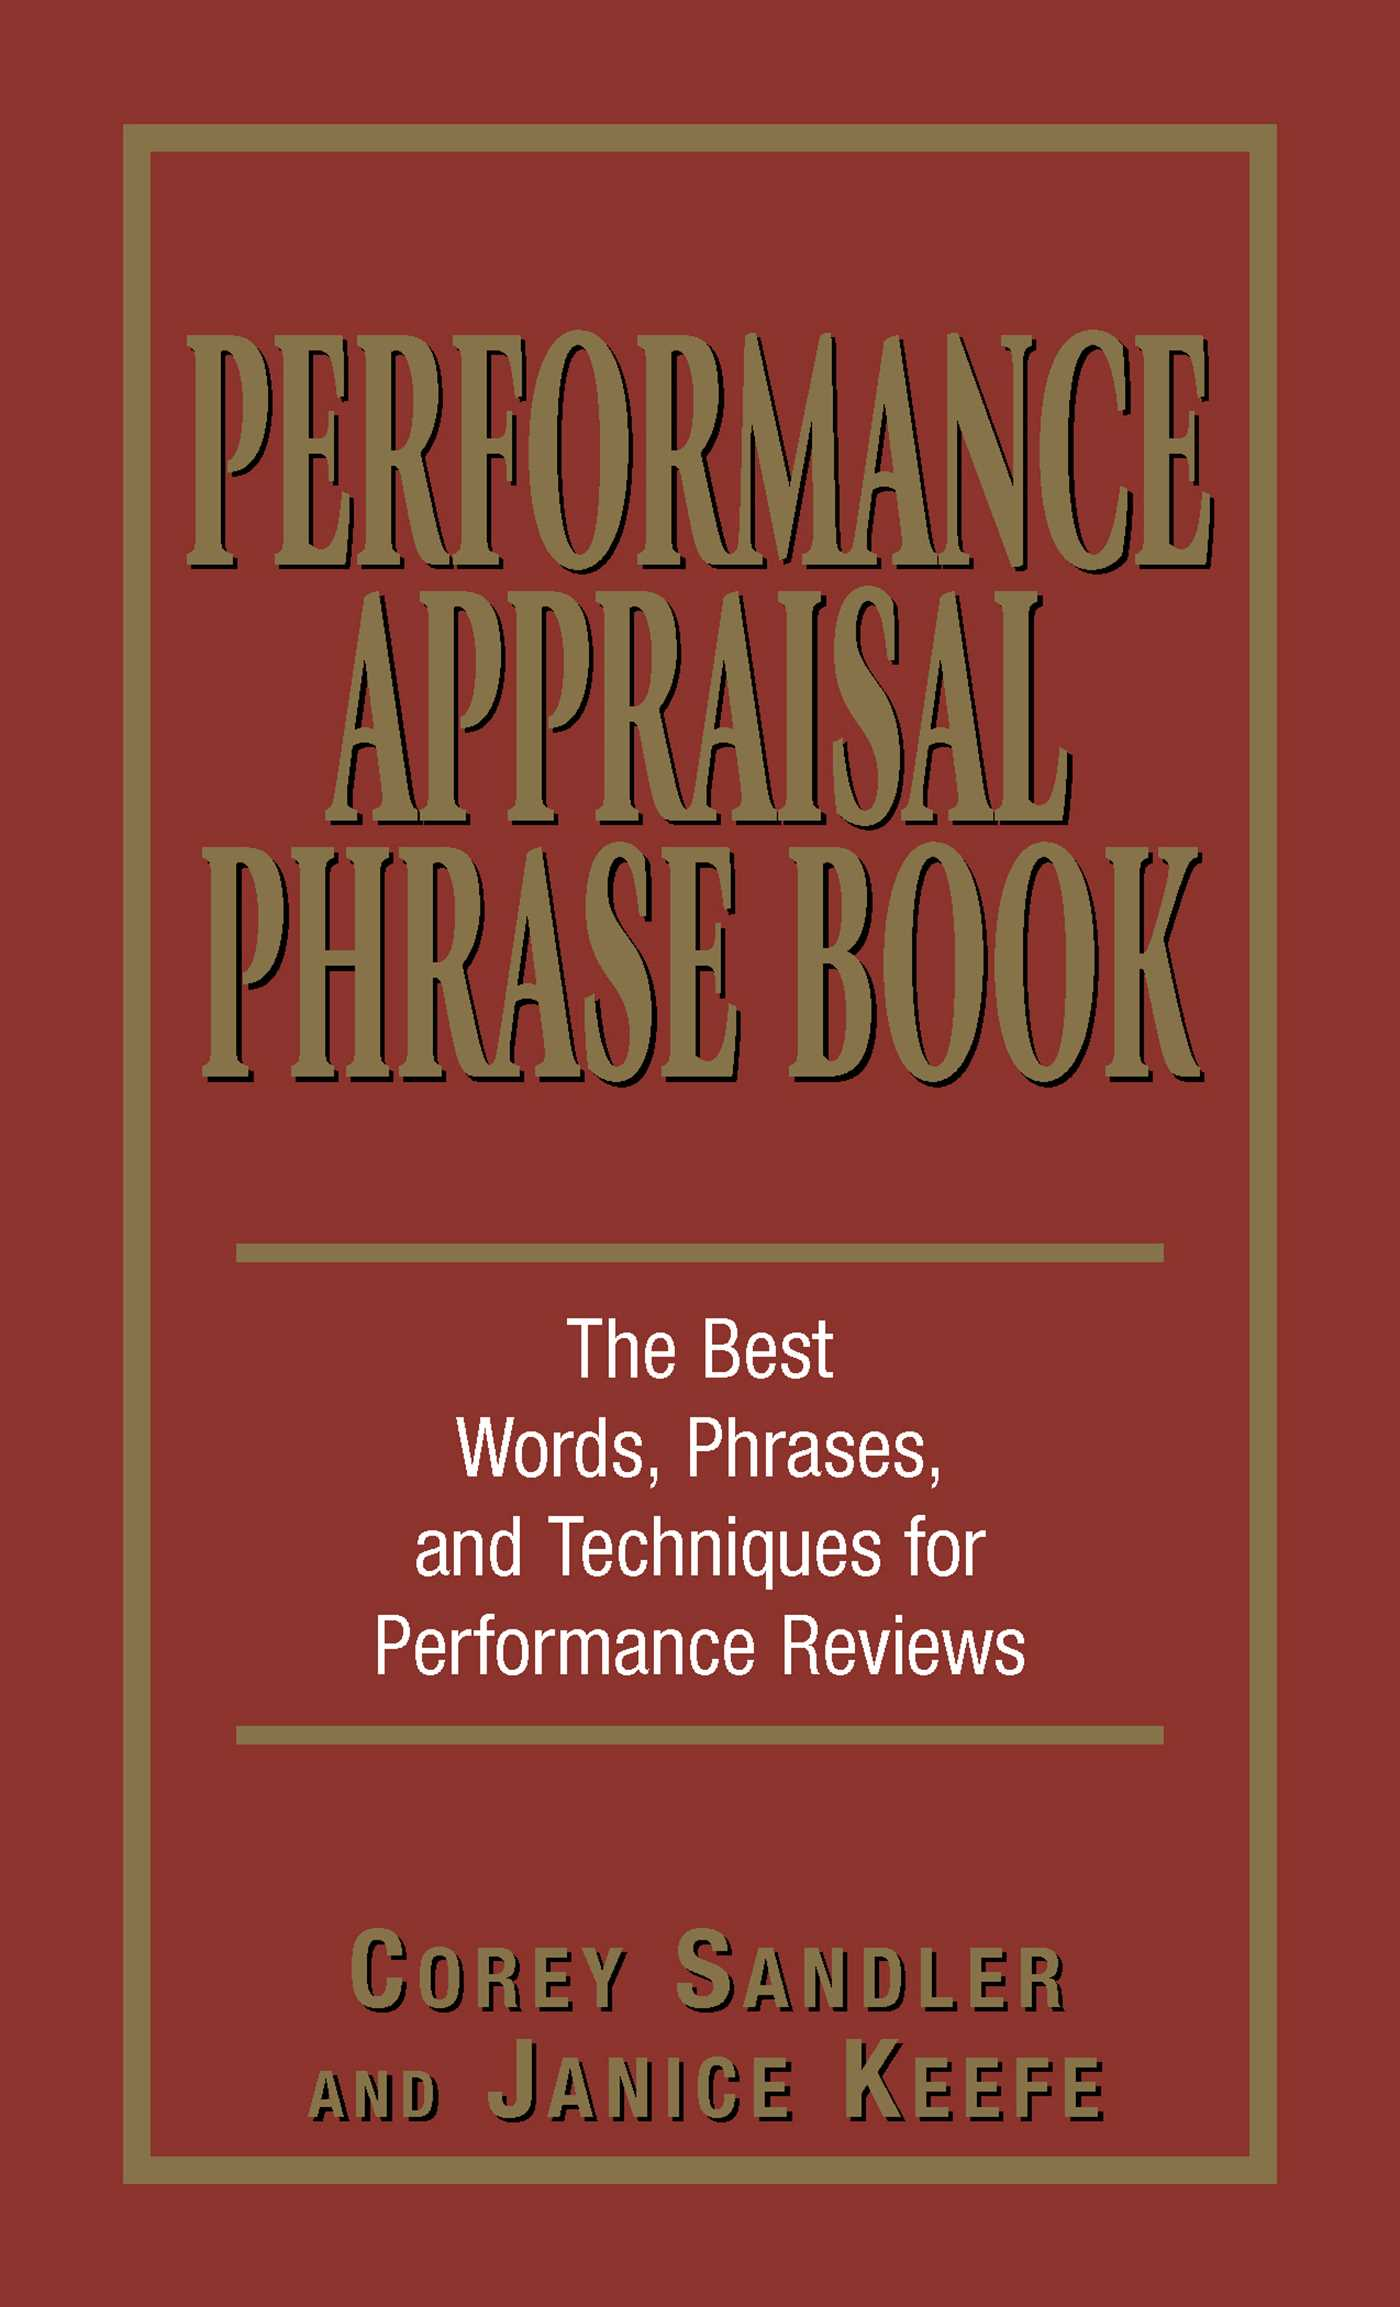 Performance Appraisal Phrase Book | Book by Corey Sandler, Janice ...